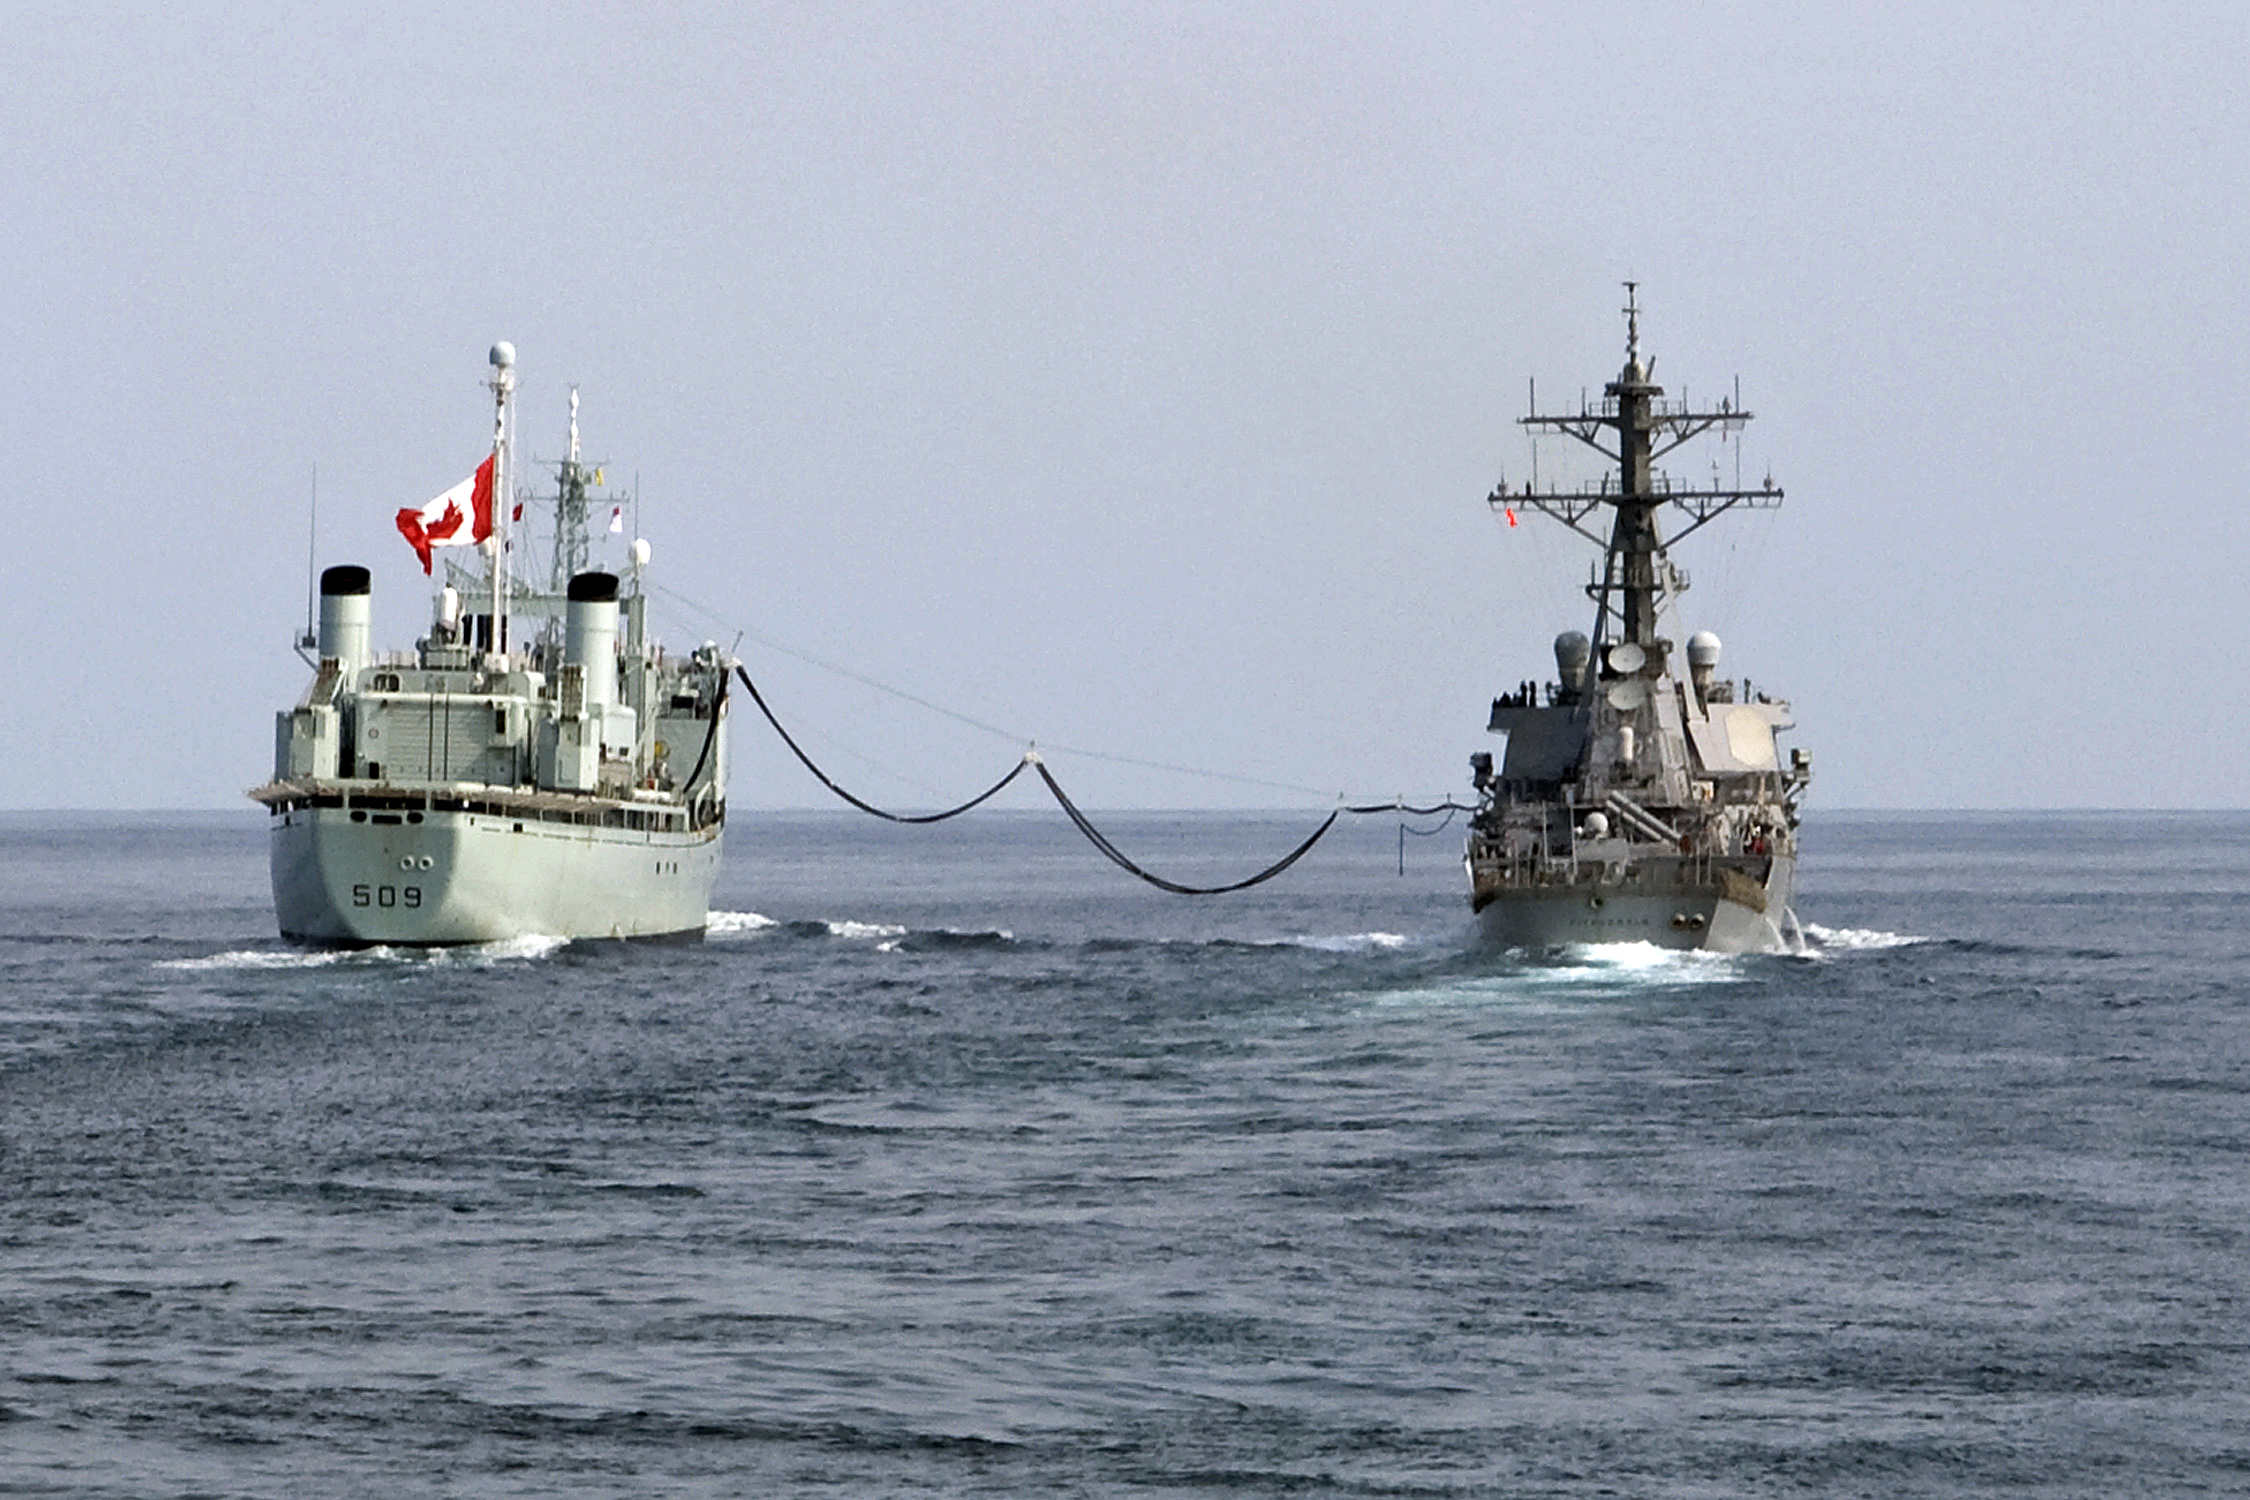 HMCS Protecteur transfers fuel to the USS Fitzgerald in 2009. Since the loss of Canada's resupply ships, the RCN has had to rely on allies to resupply at sea. (U.S. Navy)